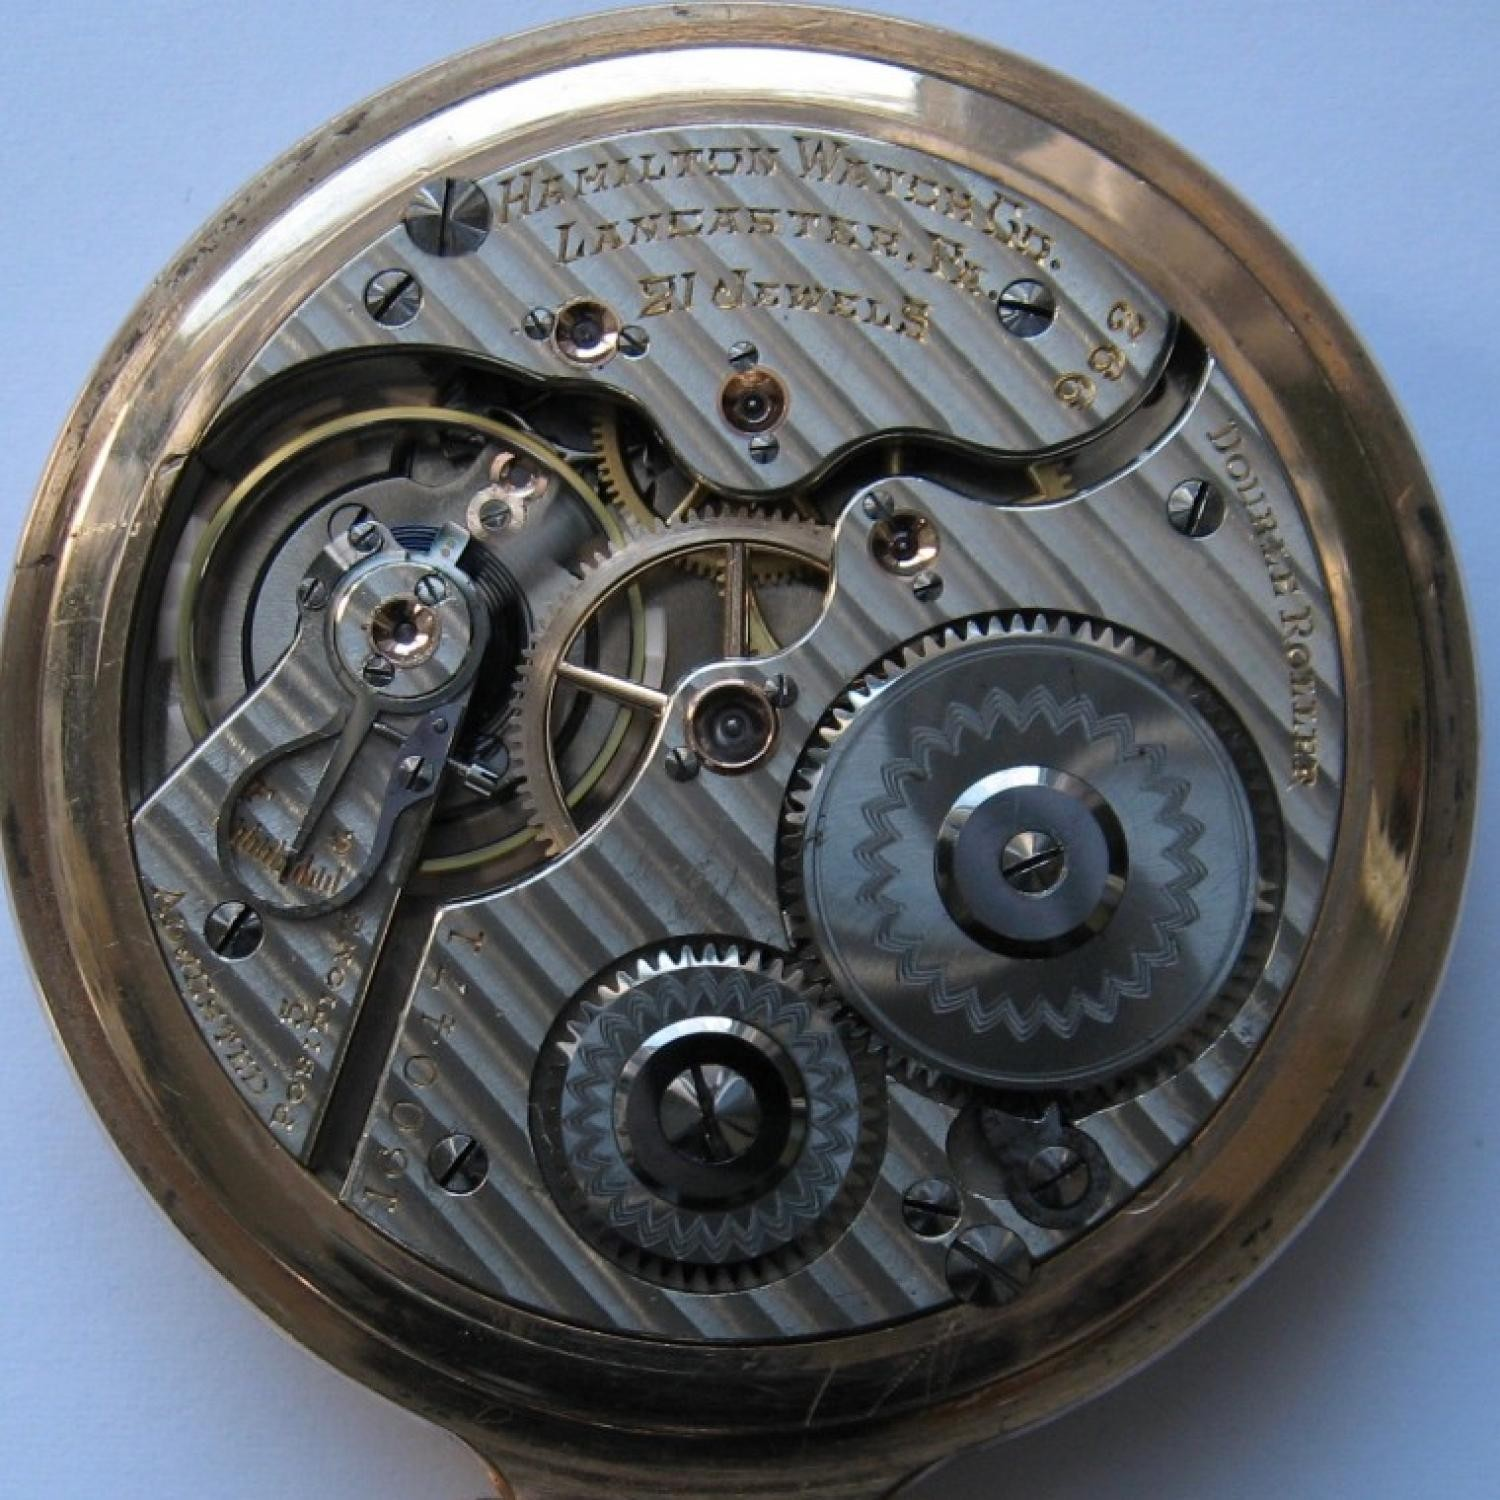 Image of Hamilton 992 #1600471 Movement